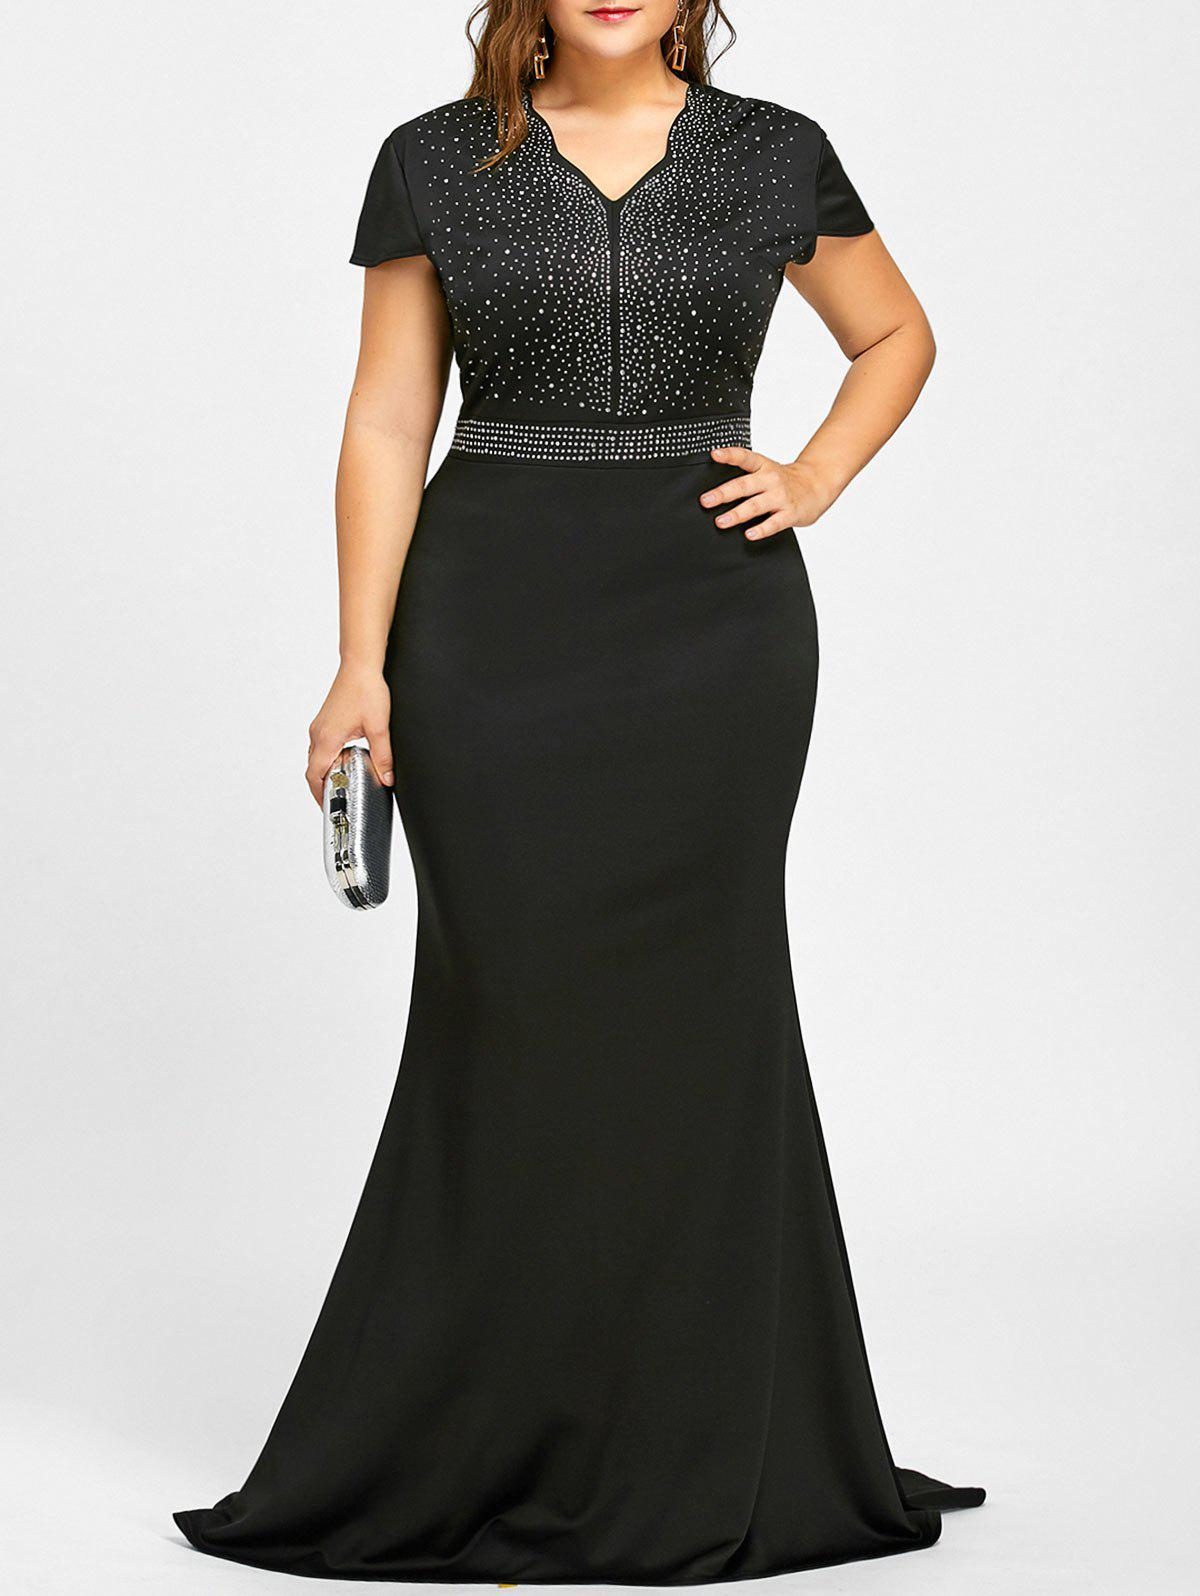 8781823a670 Affordable Rhinestone Maxi Plus Size Formal Dress